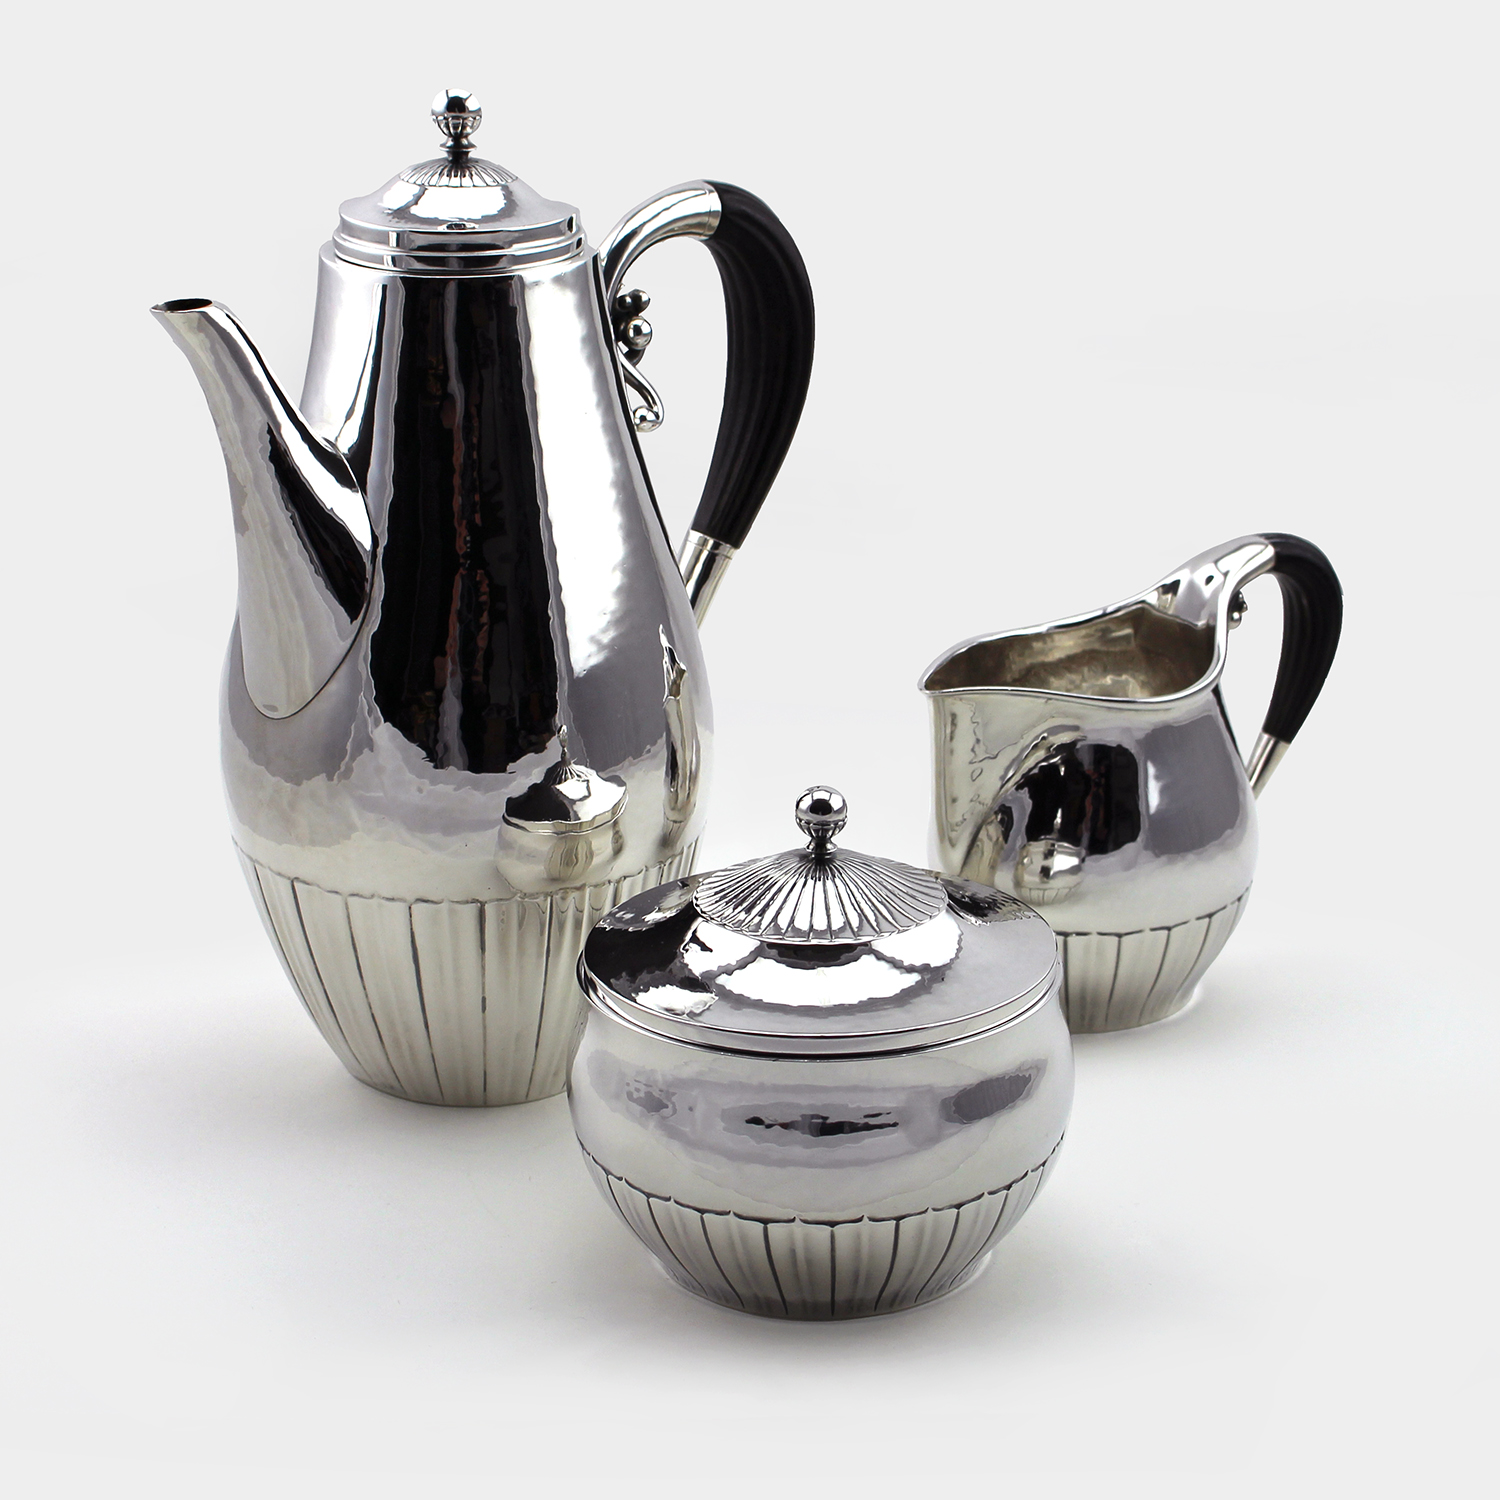 Georg Jensen (Danish 1866-1935) Cosmos 3 Piece Coffee Service